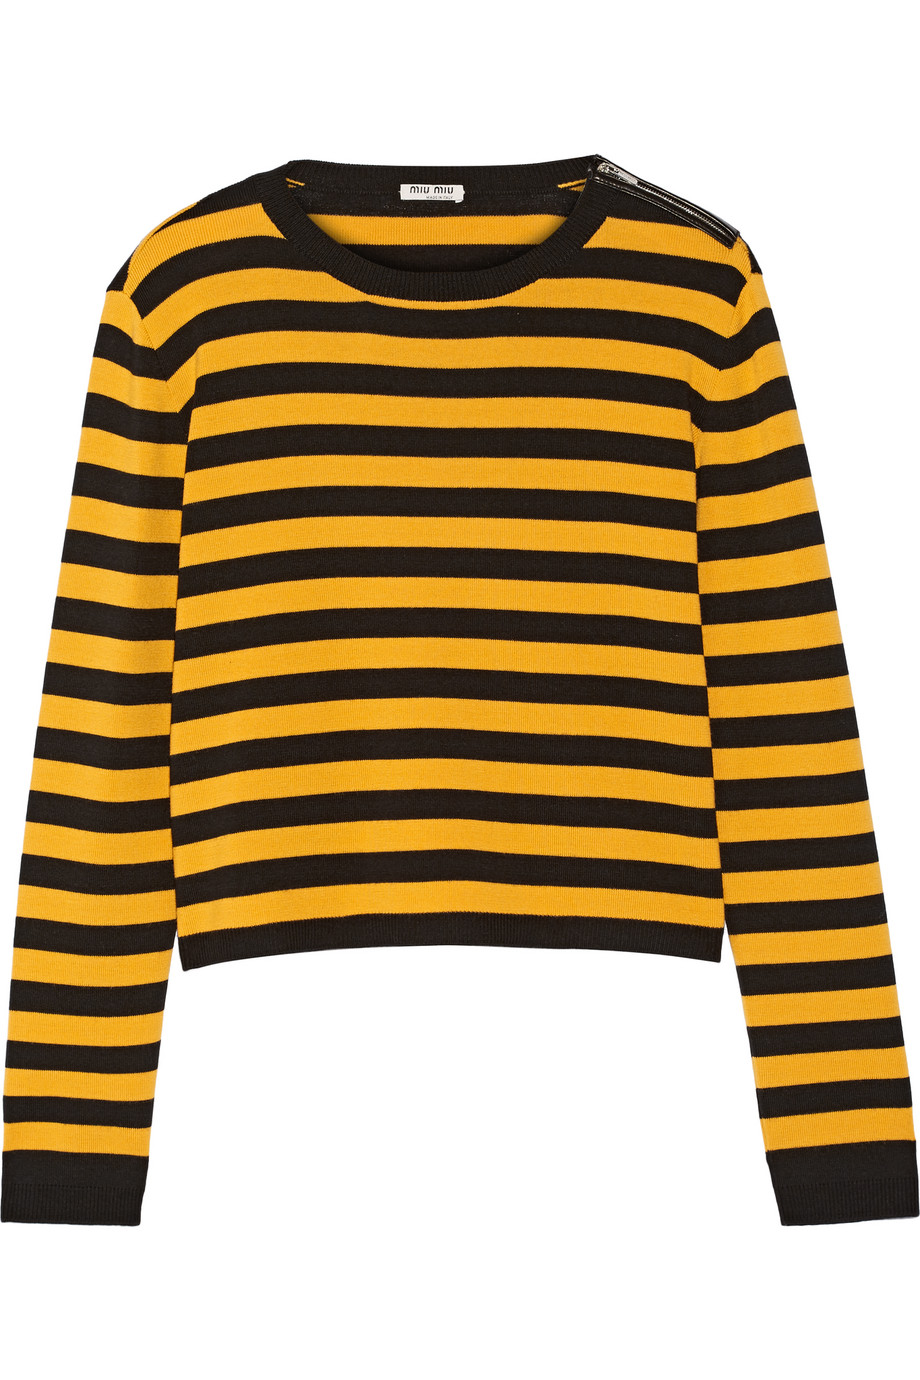 Miu Miu Striped Wool-Blend Sweater, Saffron/Black, Women's, Size: 36